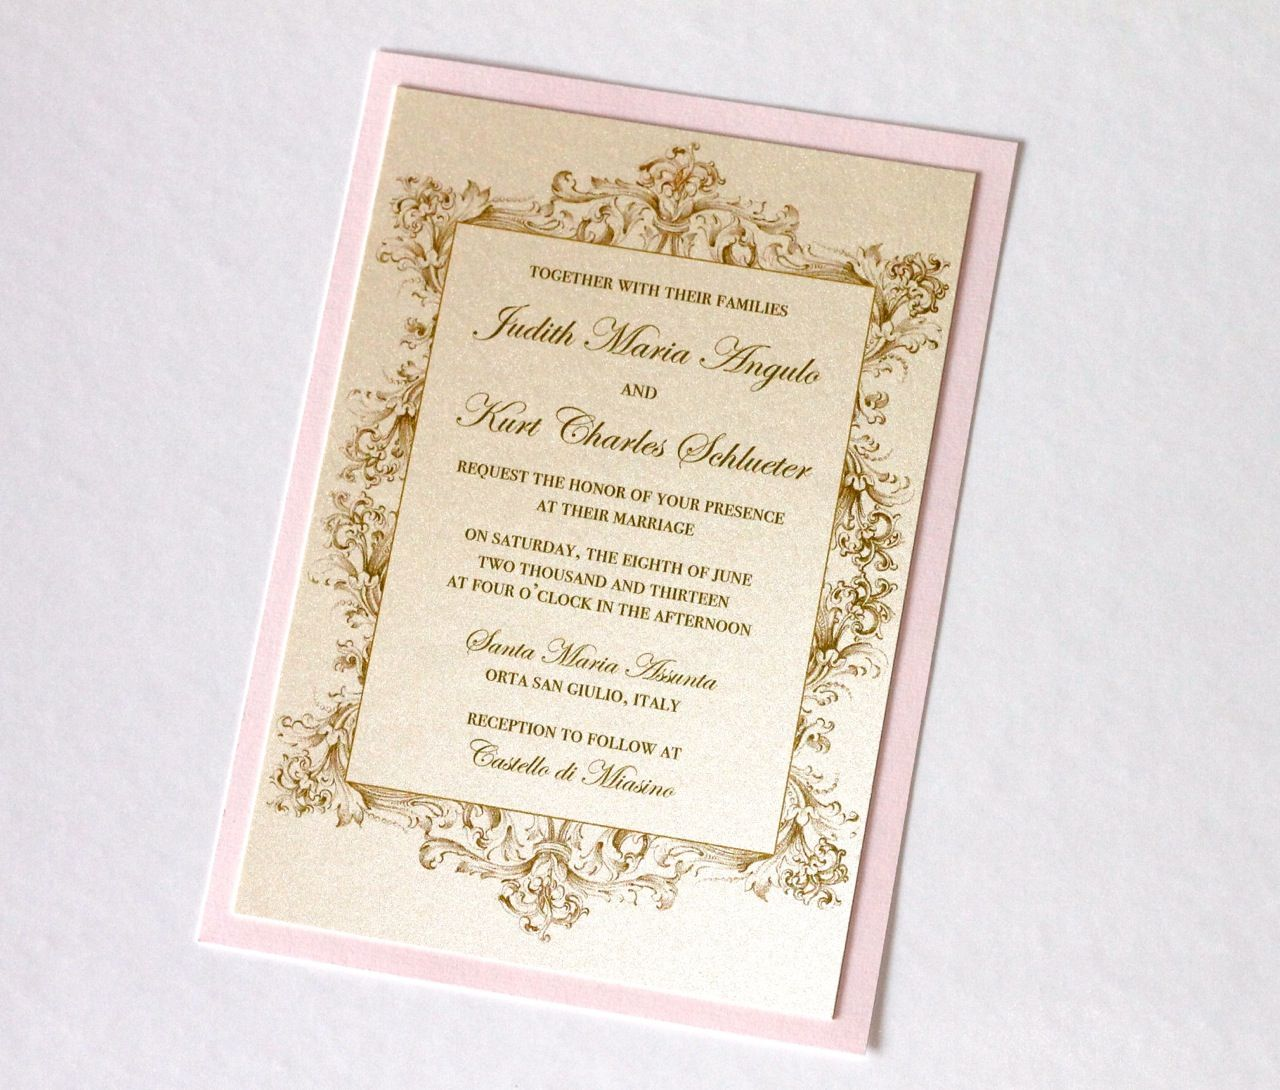 Cool Gold Wedding Invitations With Glamorous Touch | WEDDING ...